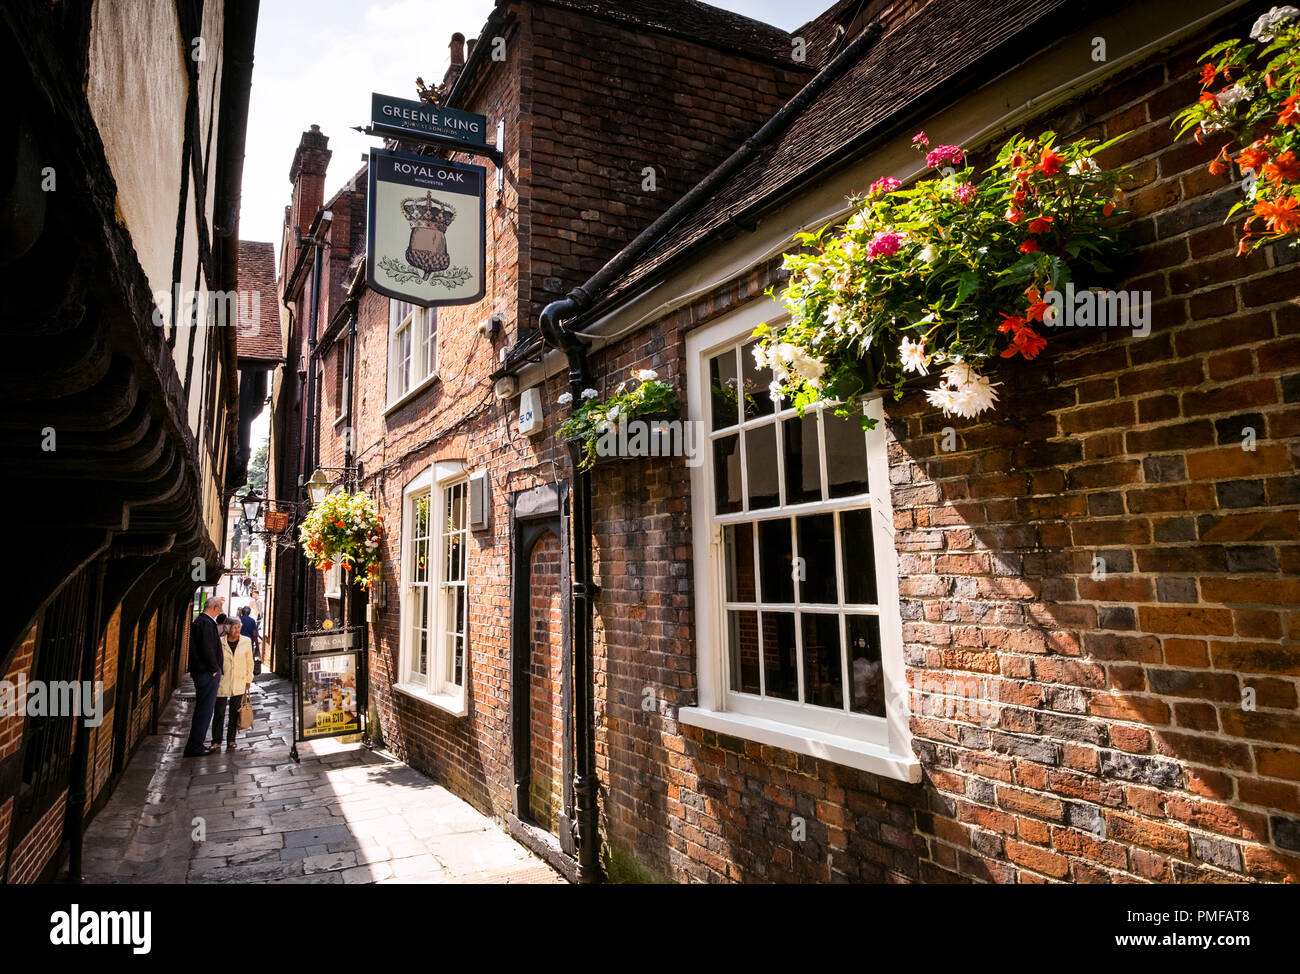 The Royal Oak pub in Winchester which is claimed to be the oldest pub in England with parts of the bar dating back to 1002 - Stock Image